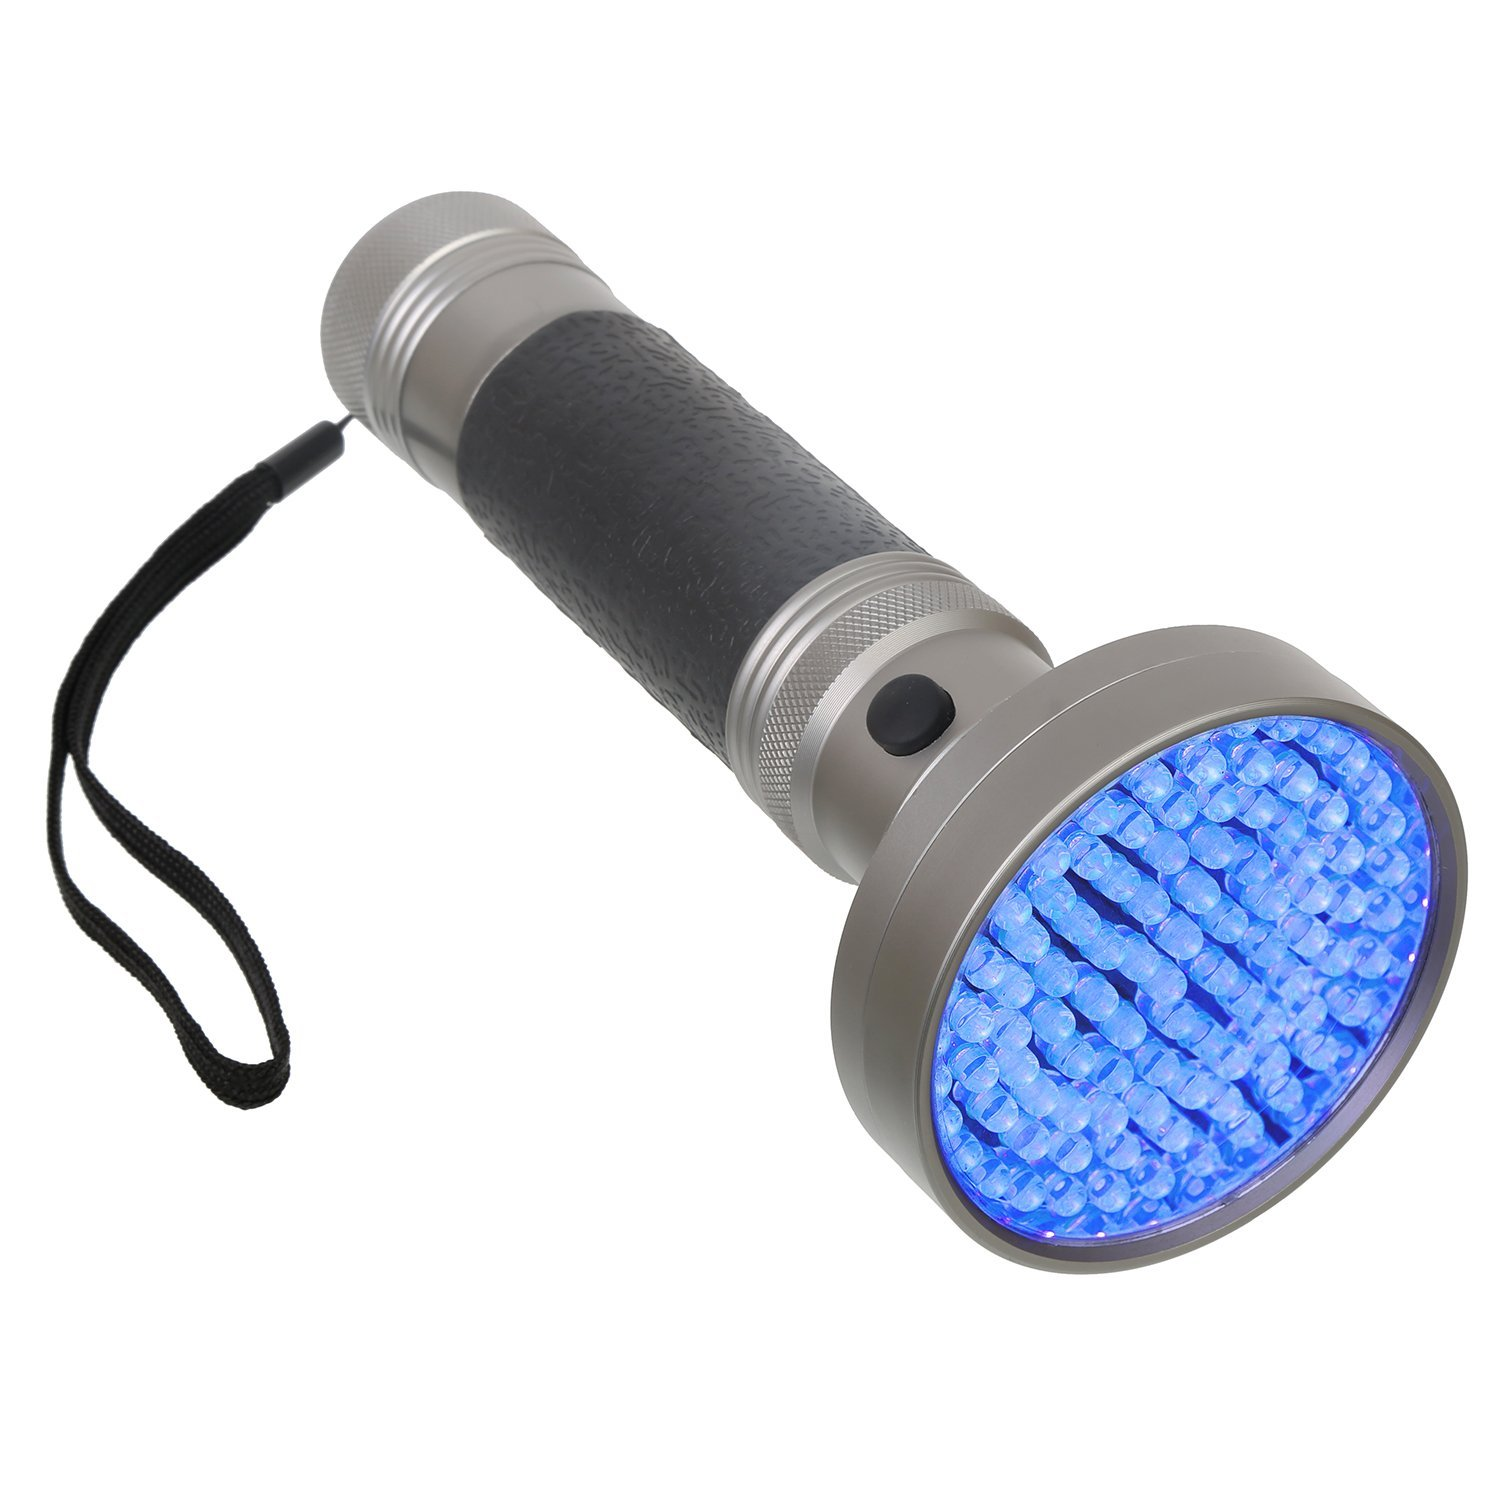 Black Light UV Flashlight 100 LED Blacklight Premium Handheld Ultraviolet Pet Dog and Cat Urine Stain Finder Detects Human Fluids, Counterfeit Money, Bed Bugs Scorpions & Leaks - Arf Pets